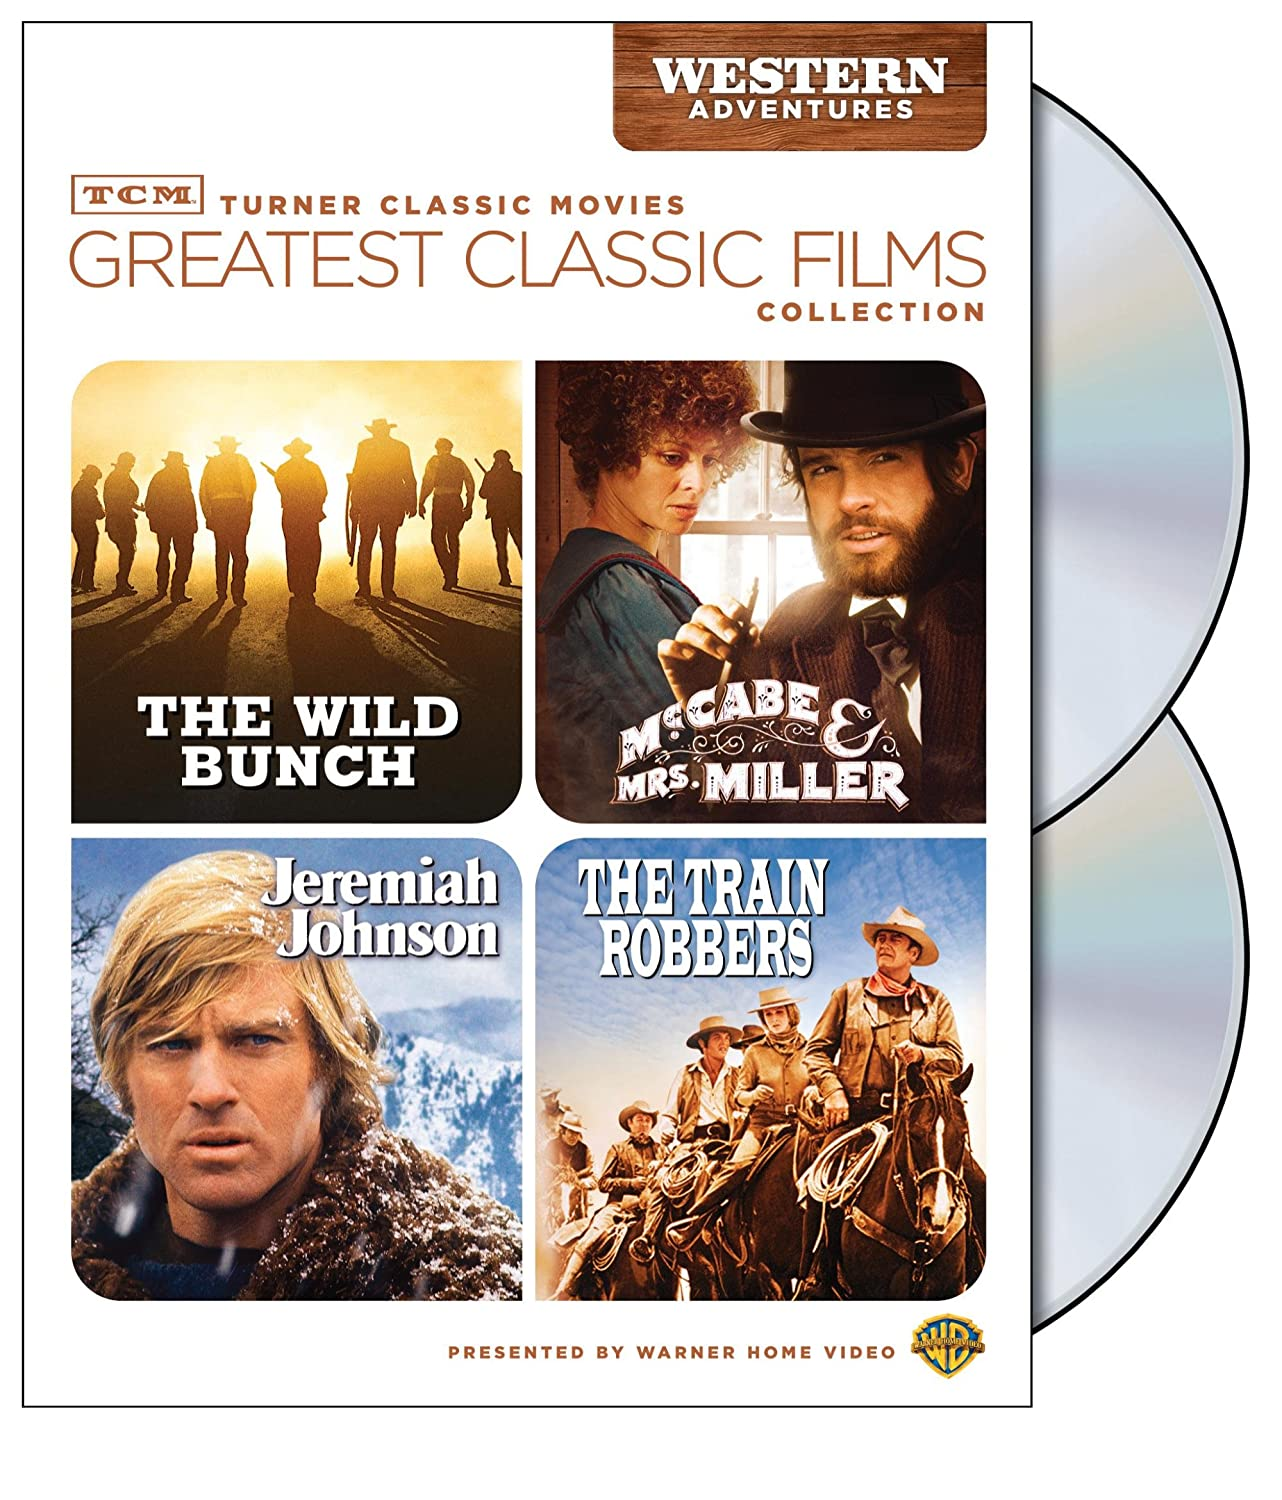 TCM Greatest Classic Films Collection: Adventures W Western Luxury Courier shipping free shipping goods The